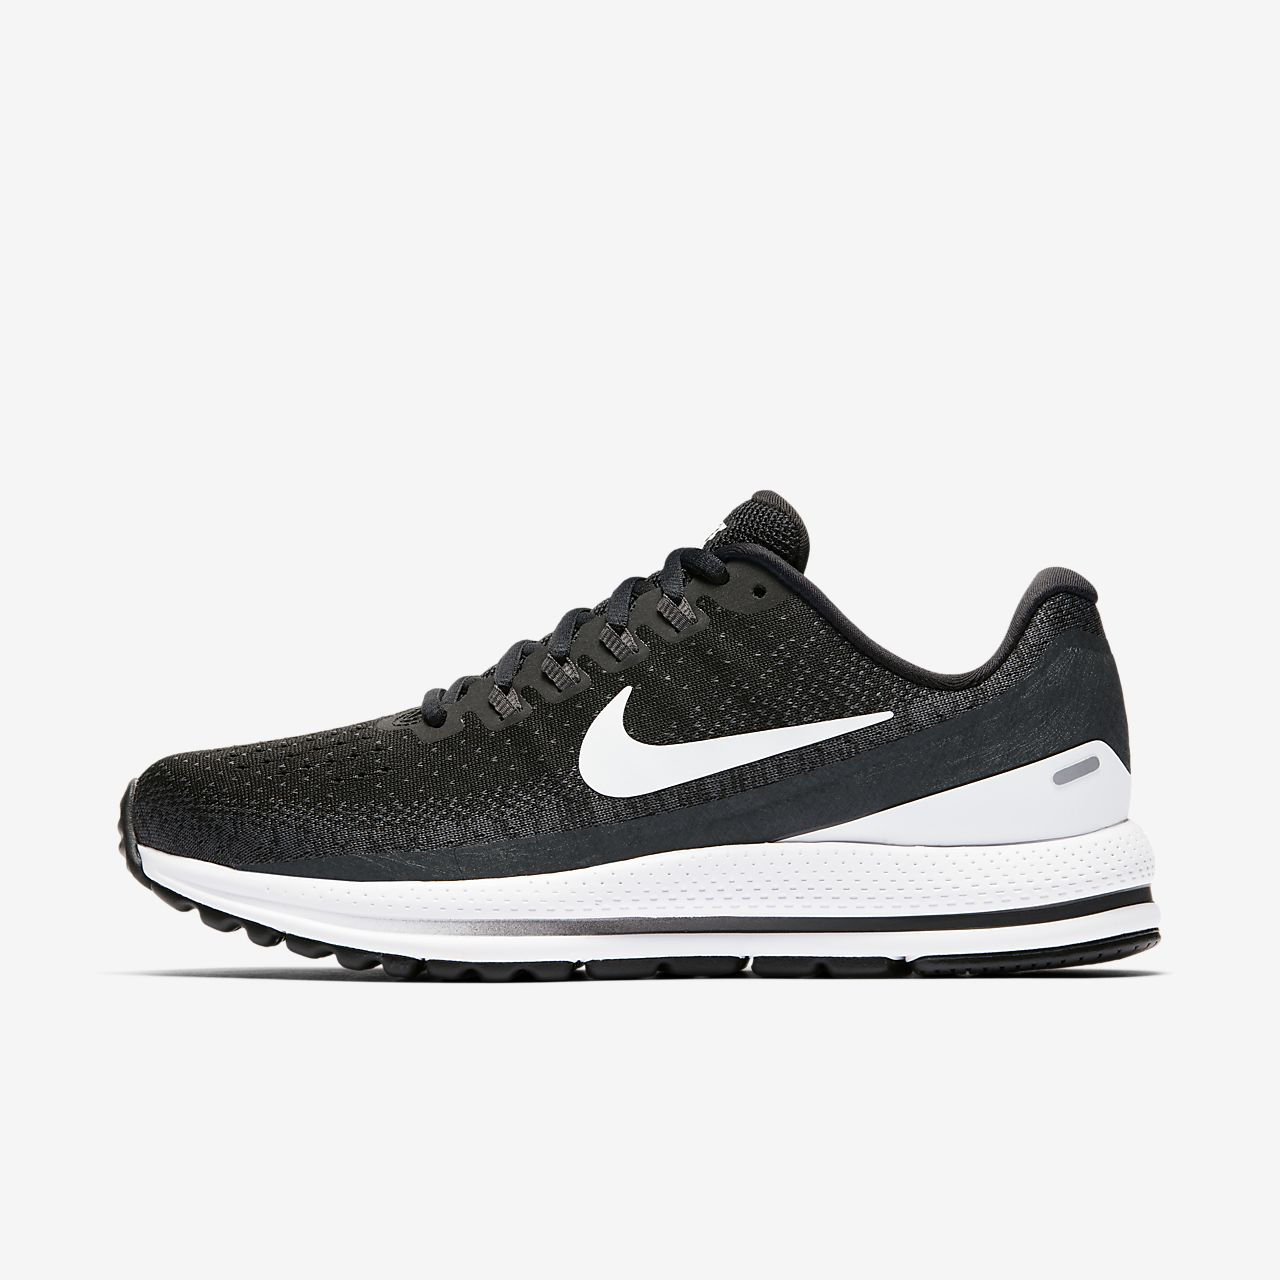 reputable site a648d 93dc1 ... Nike Air Zoom Vomero 13 Damen-Laufschuh